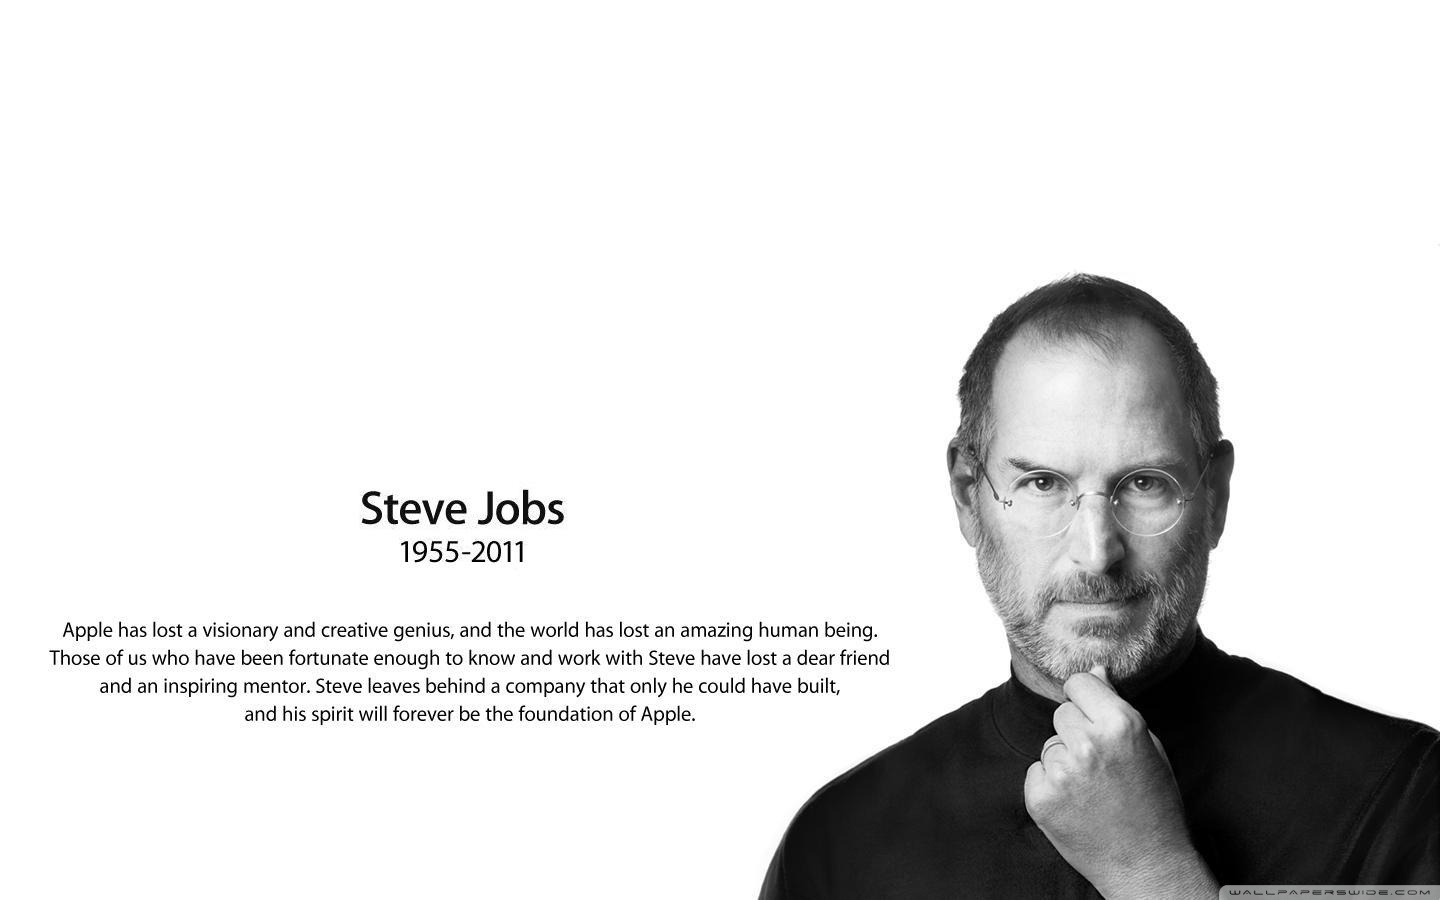 Steve Jobs Wallpaper High Resolution